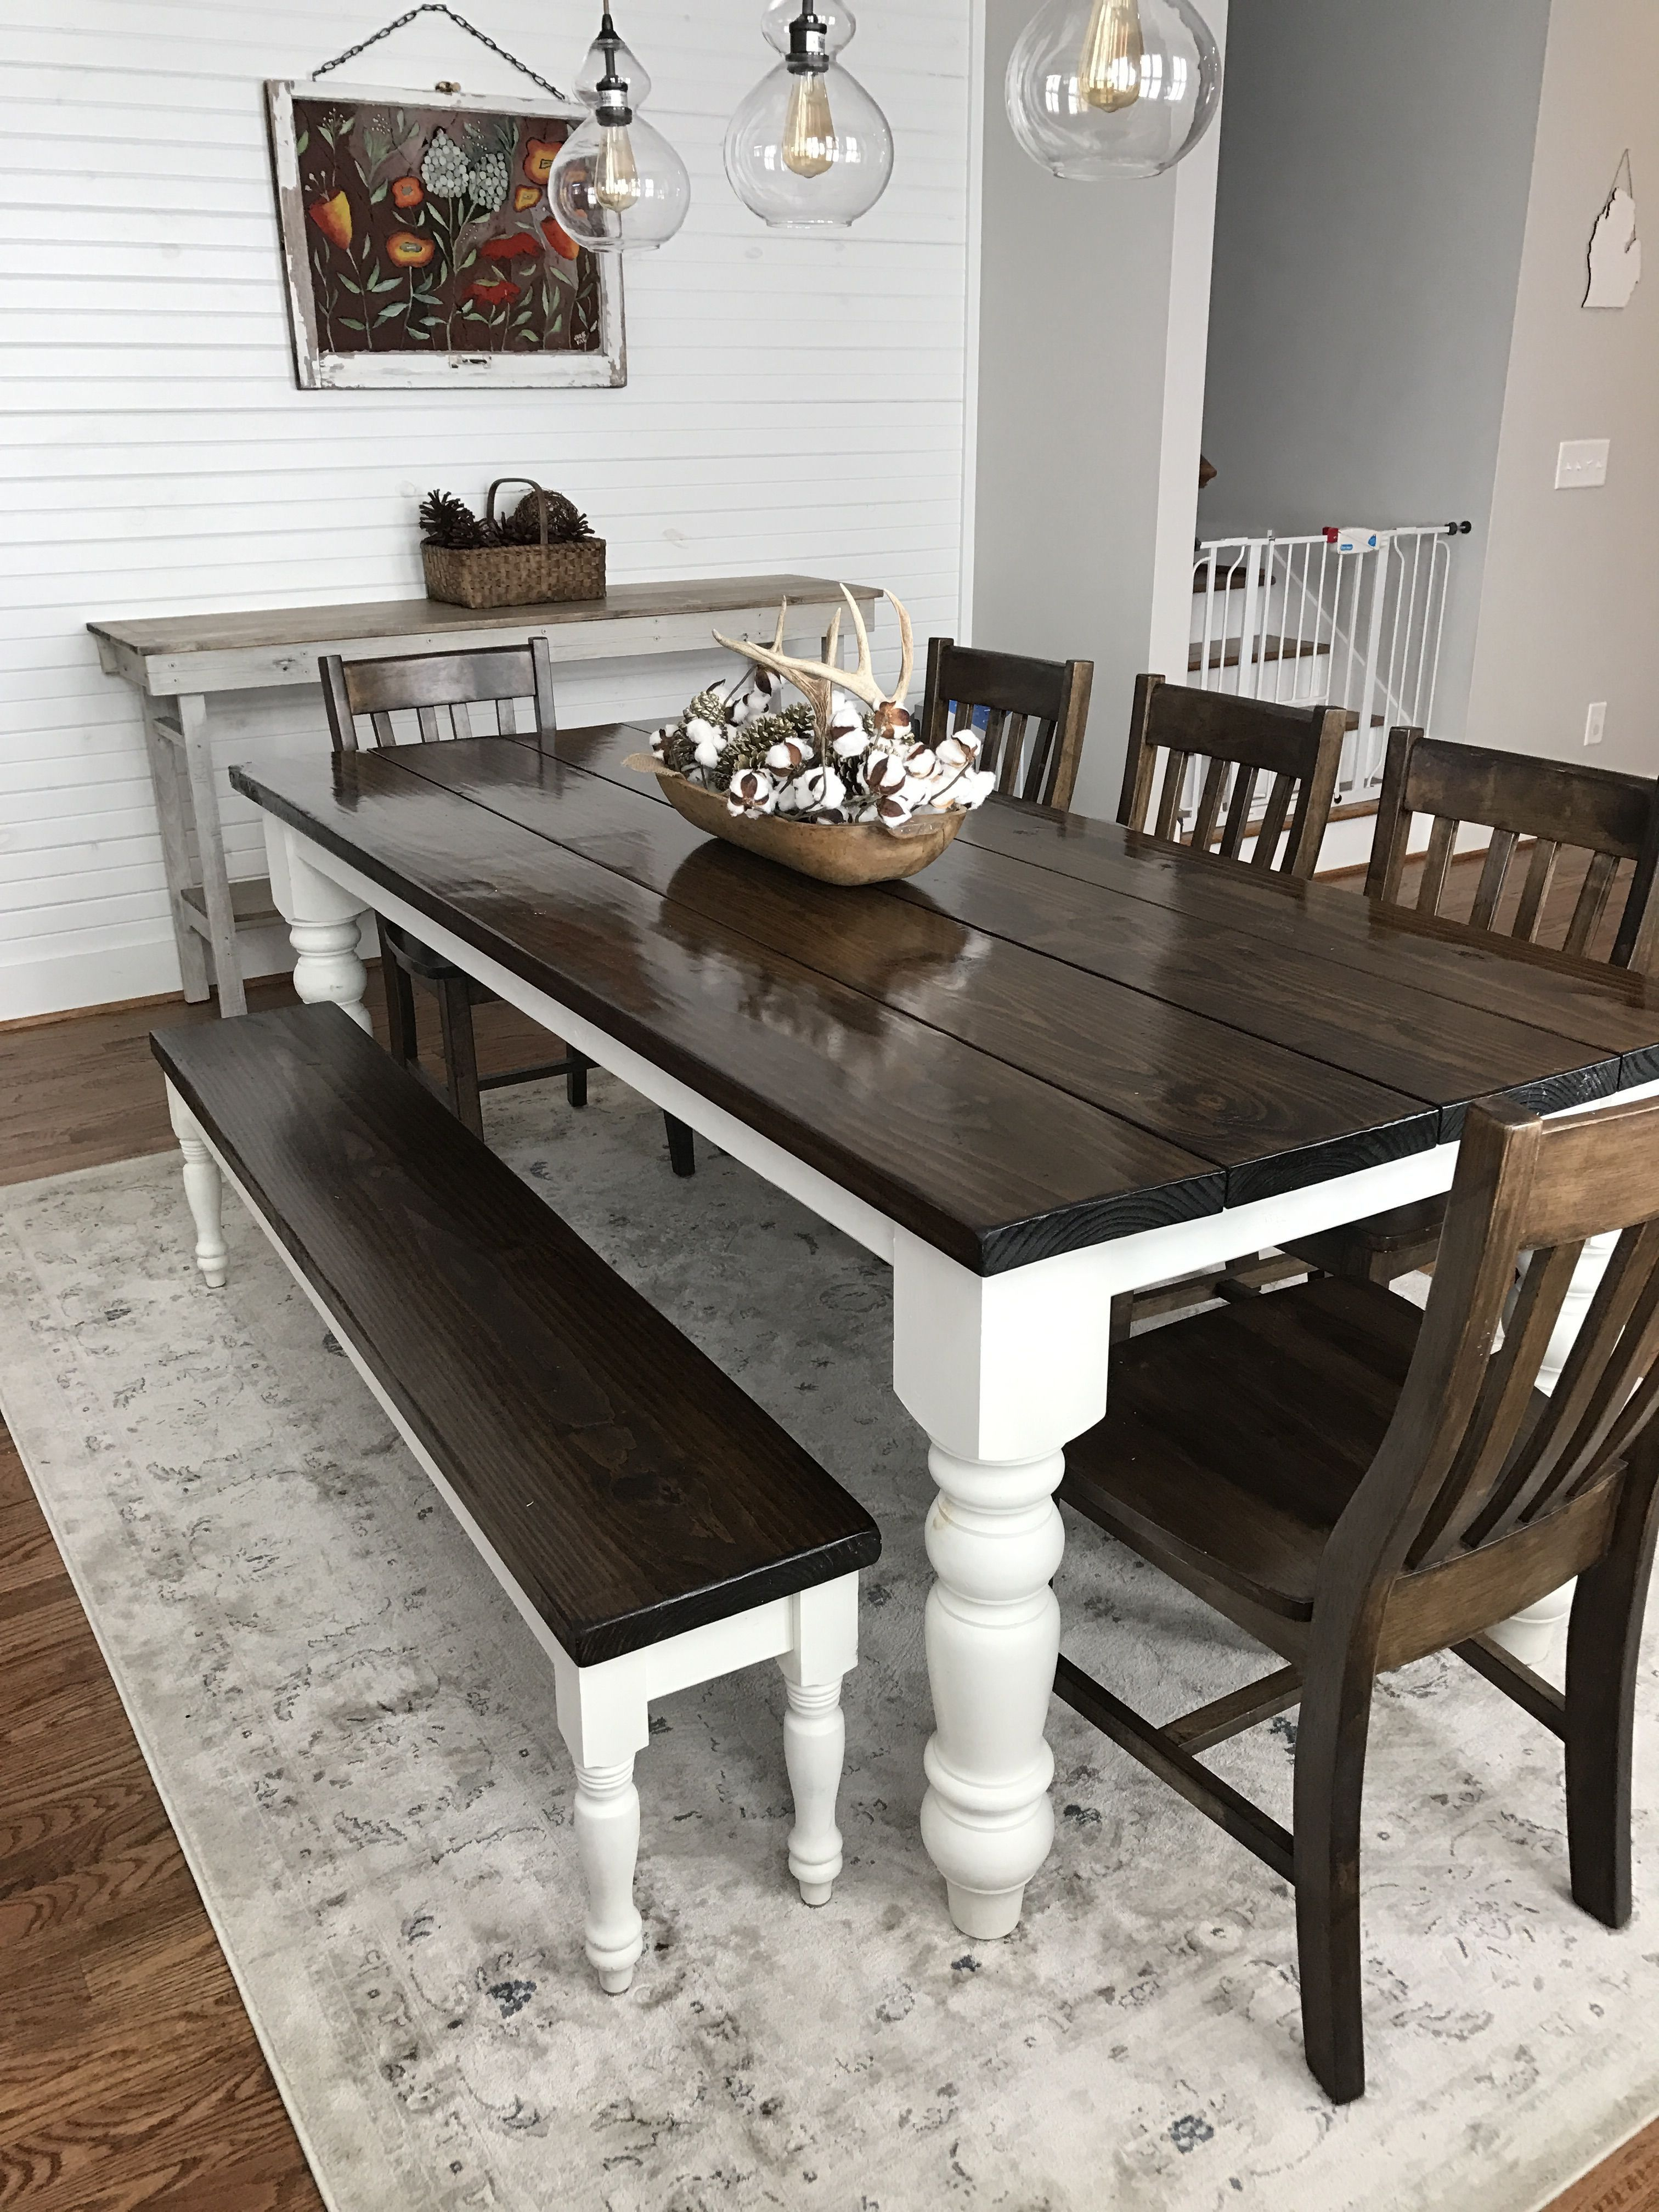 Luxury Solid Pine Farmhouse Kitchen Table Modern Farmhouse Dining Room Decor Farmhouse Dining Room Table Farmhouse Dining Rooms Decor